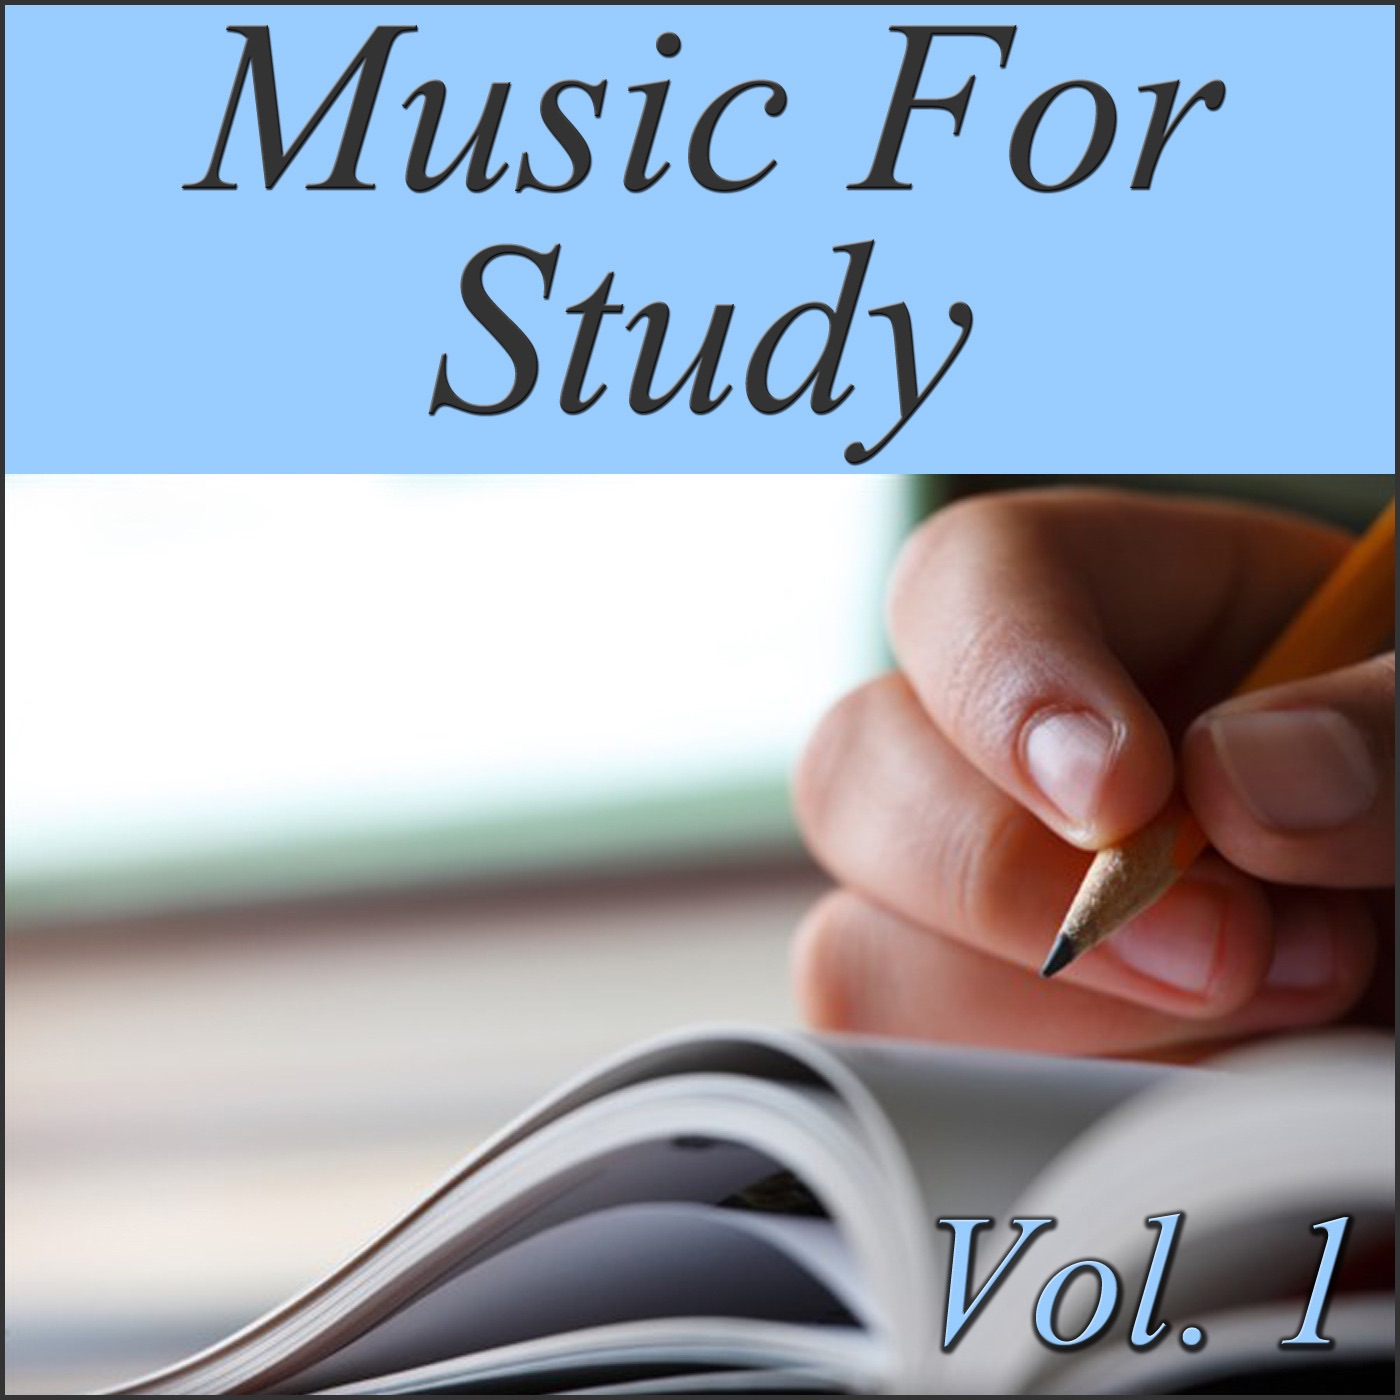 Music for Study, Vol. 1